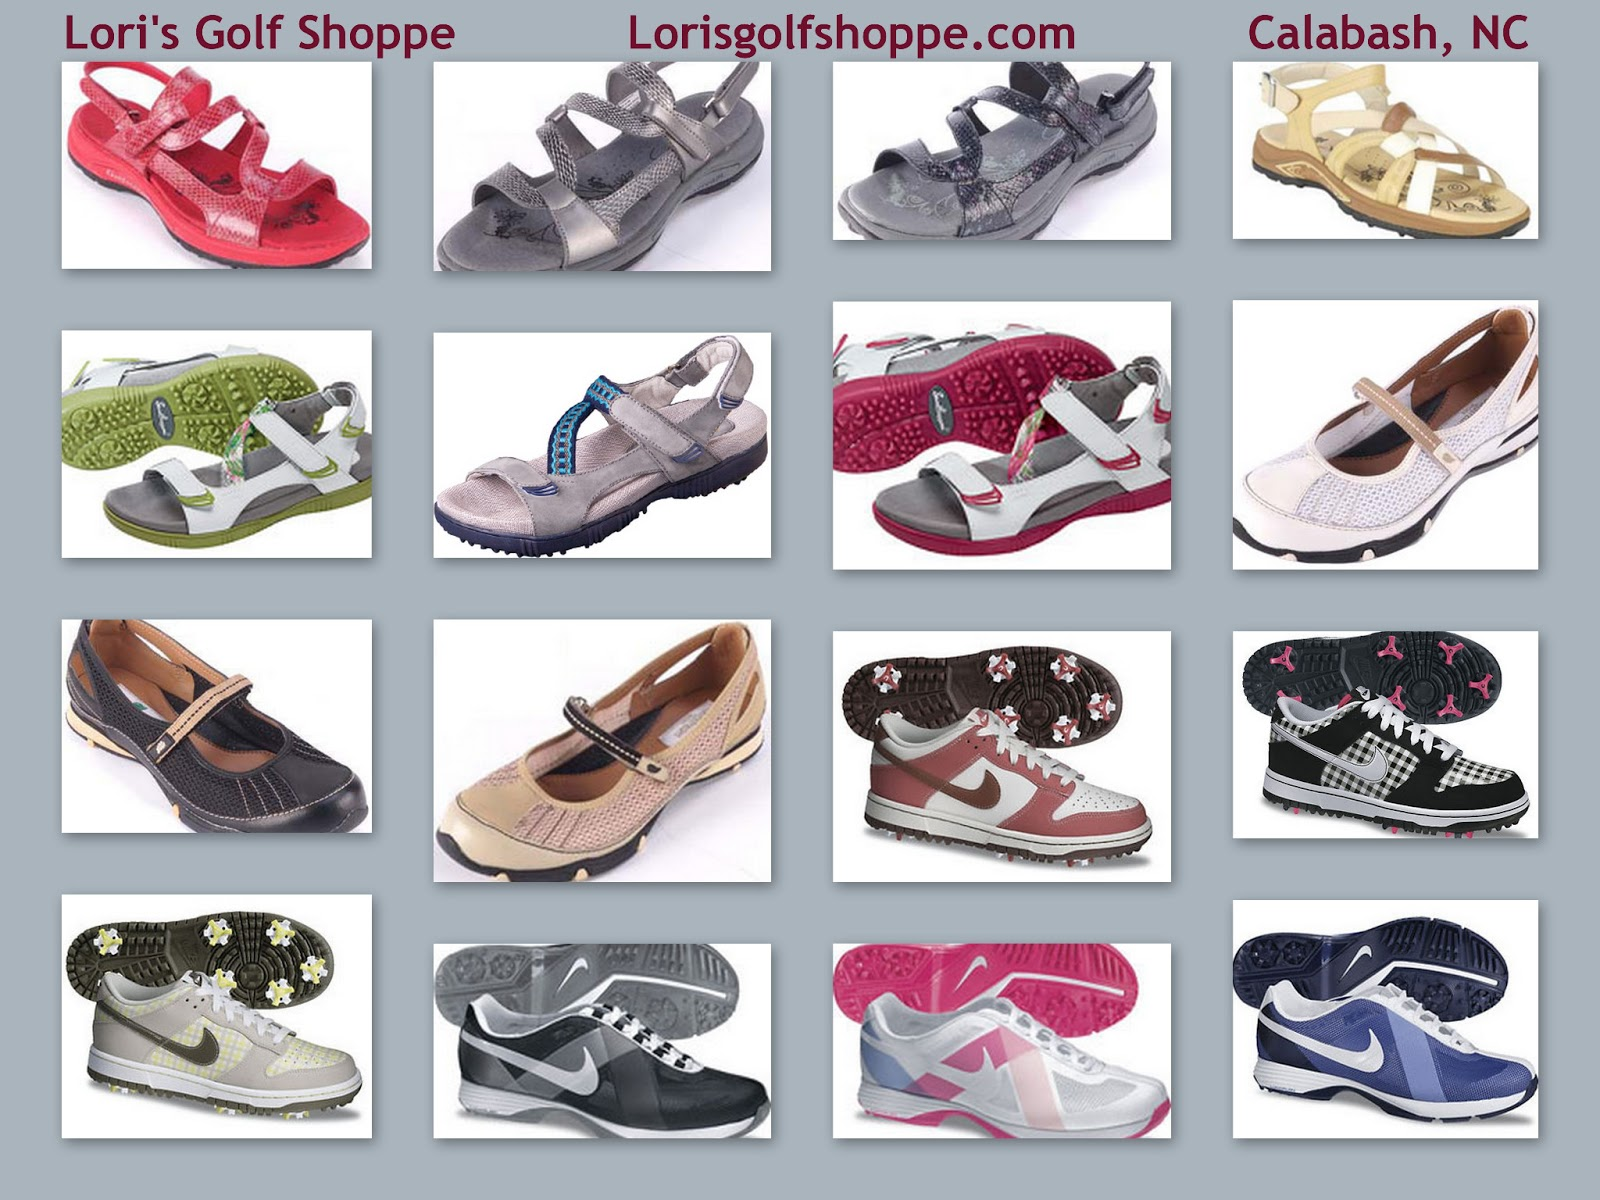 """new arrival b44ed b83e4 There is nothing like playing 18 holes in a great pair of golf shoes!  Pictured here are assorted styles for the """"Diva"""" in you from Nike,  Golfstream and ..."""